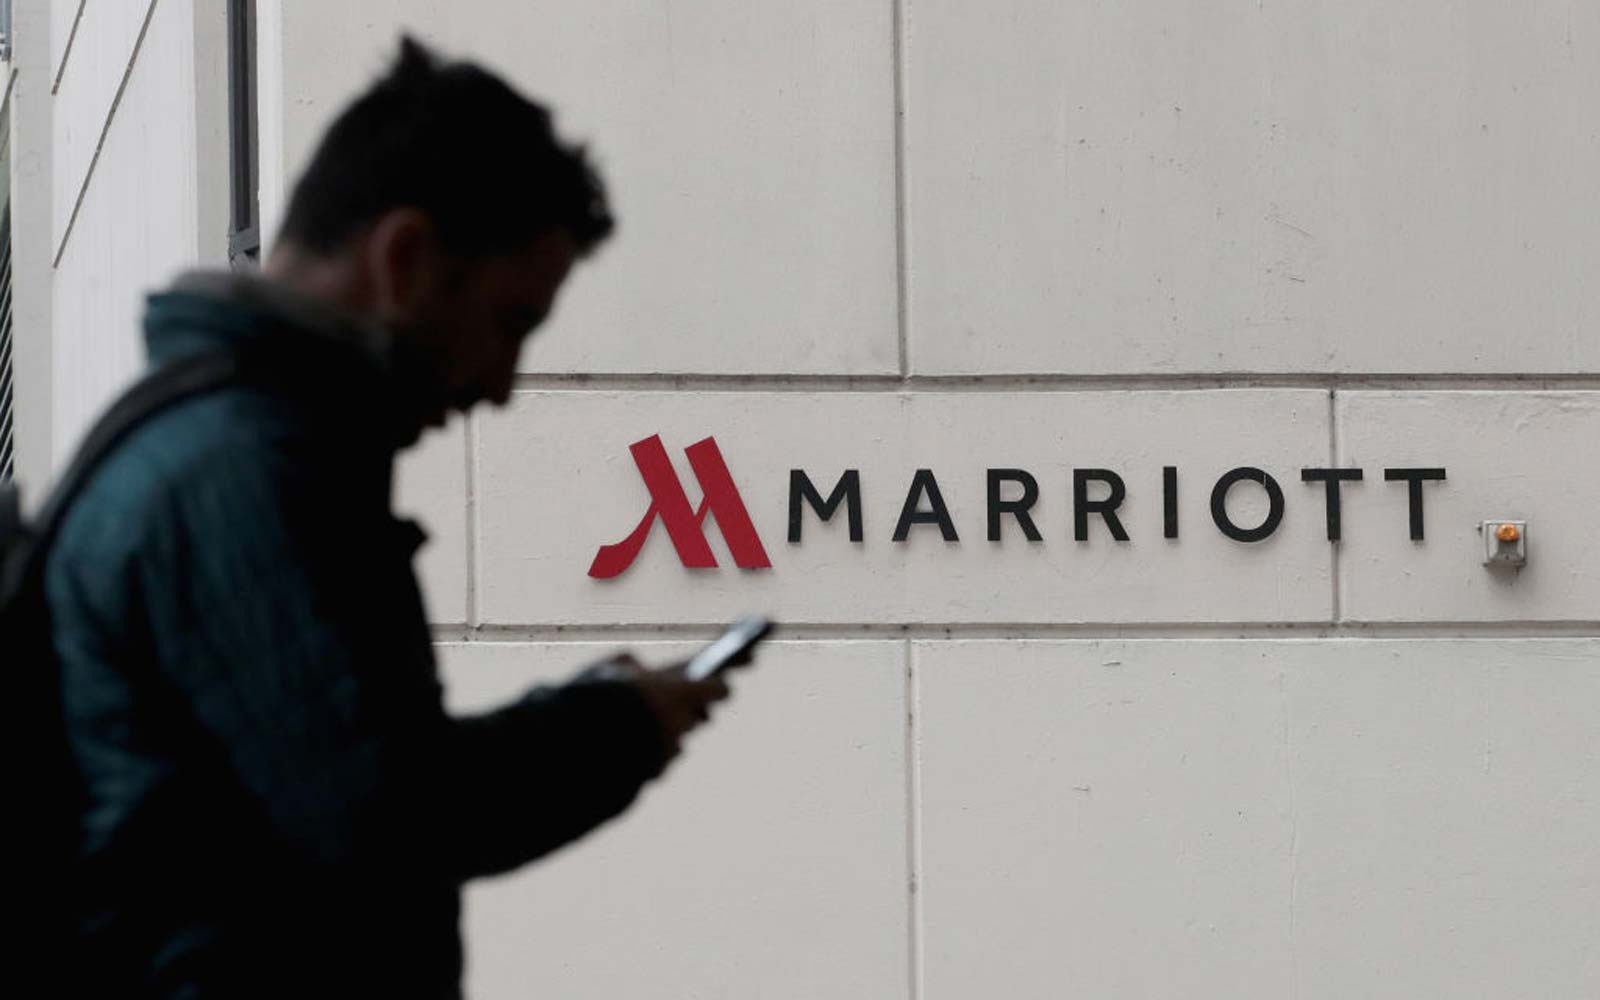 Marriott Now Says 5.25 Million Passport Numbers Were Accessed in November Data Breach